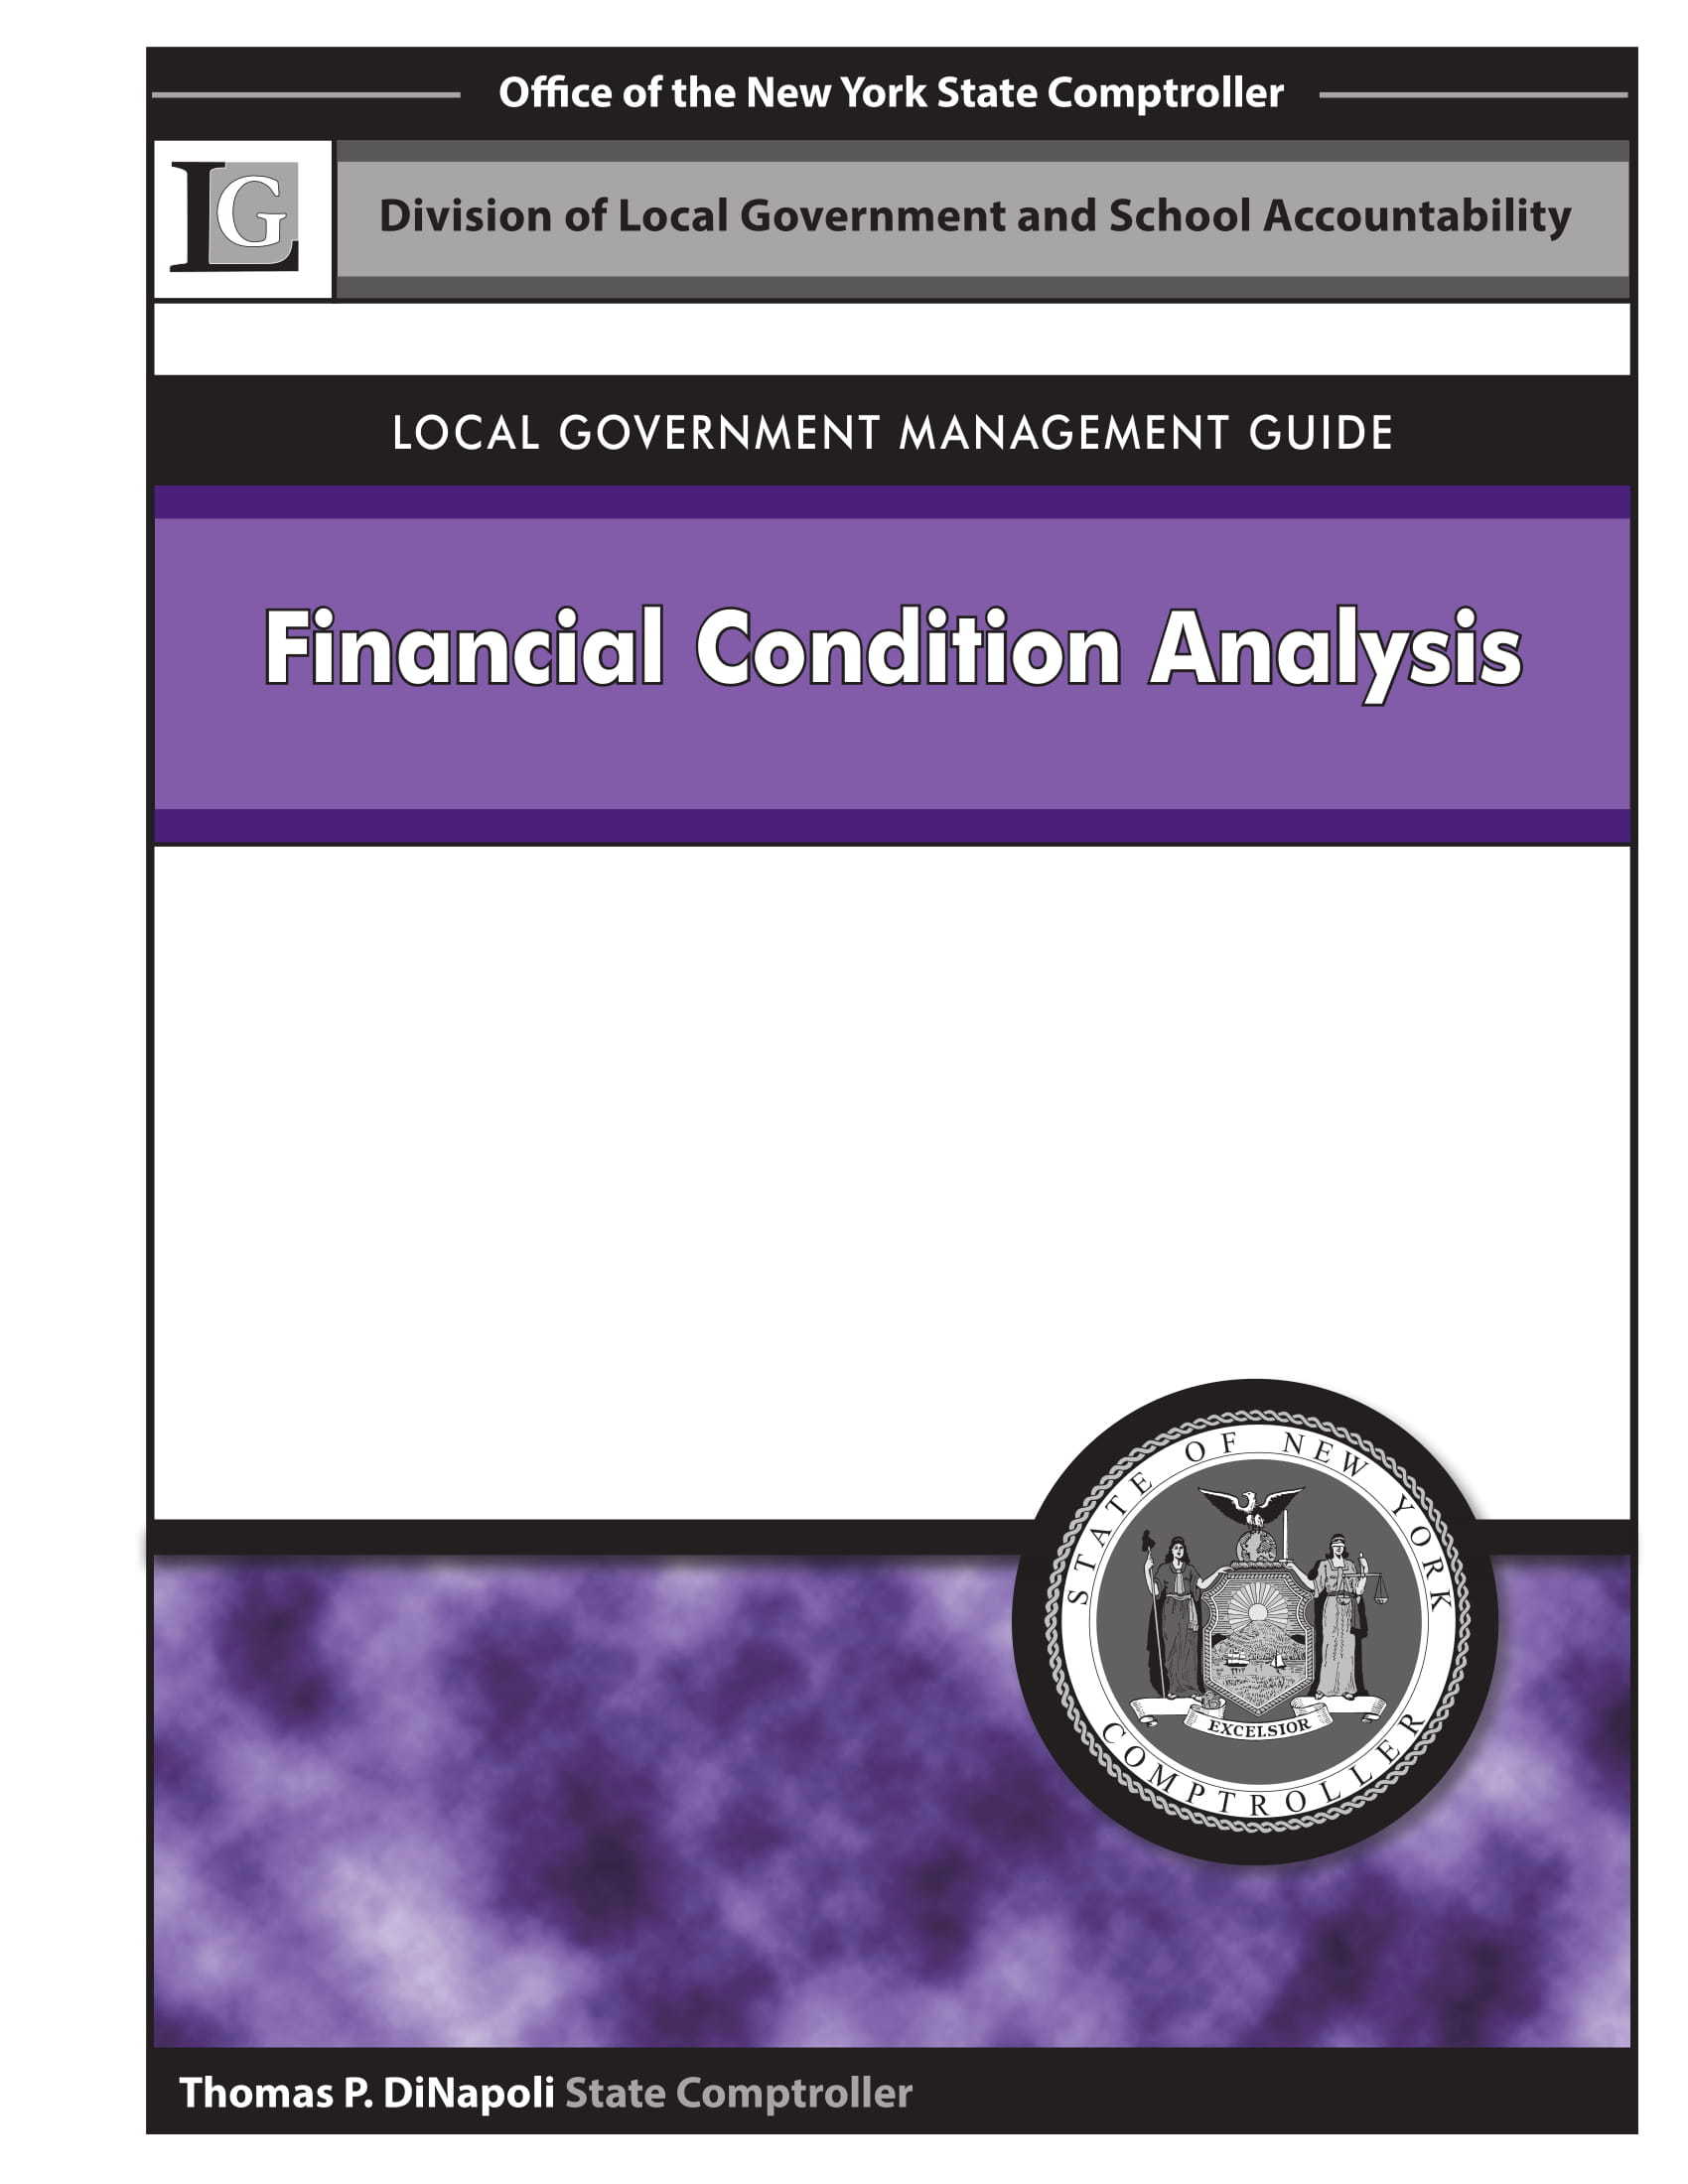 local government financial health analysis example